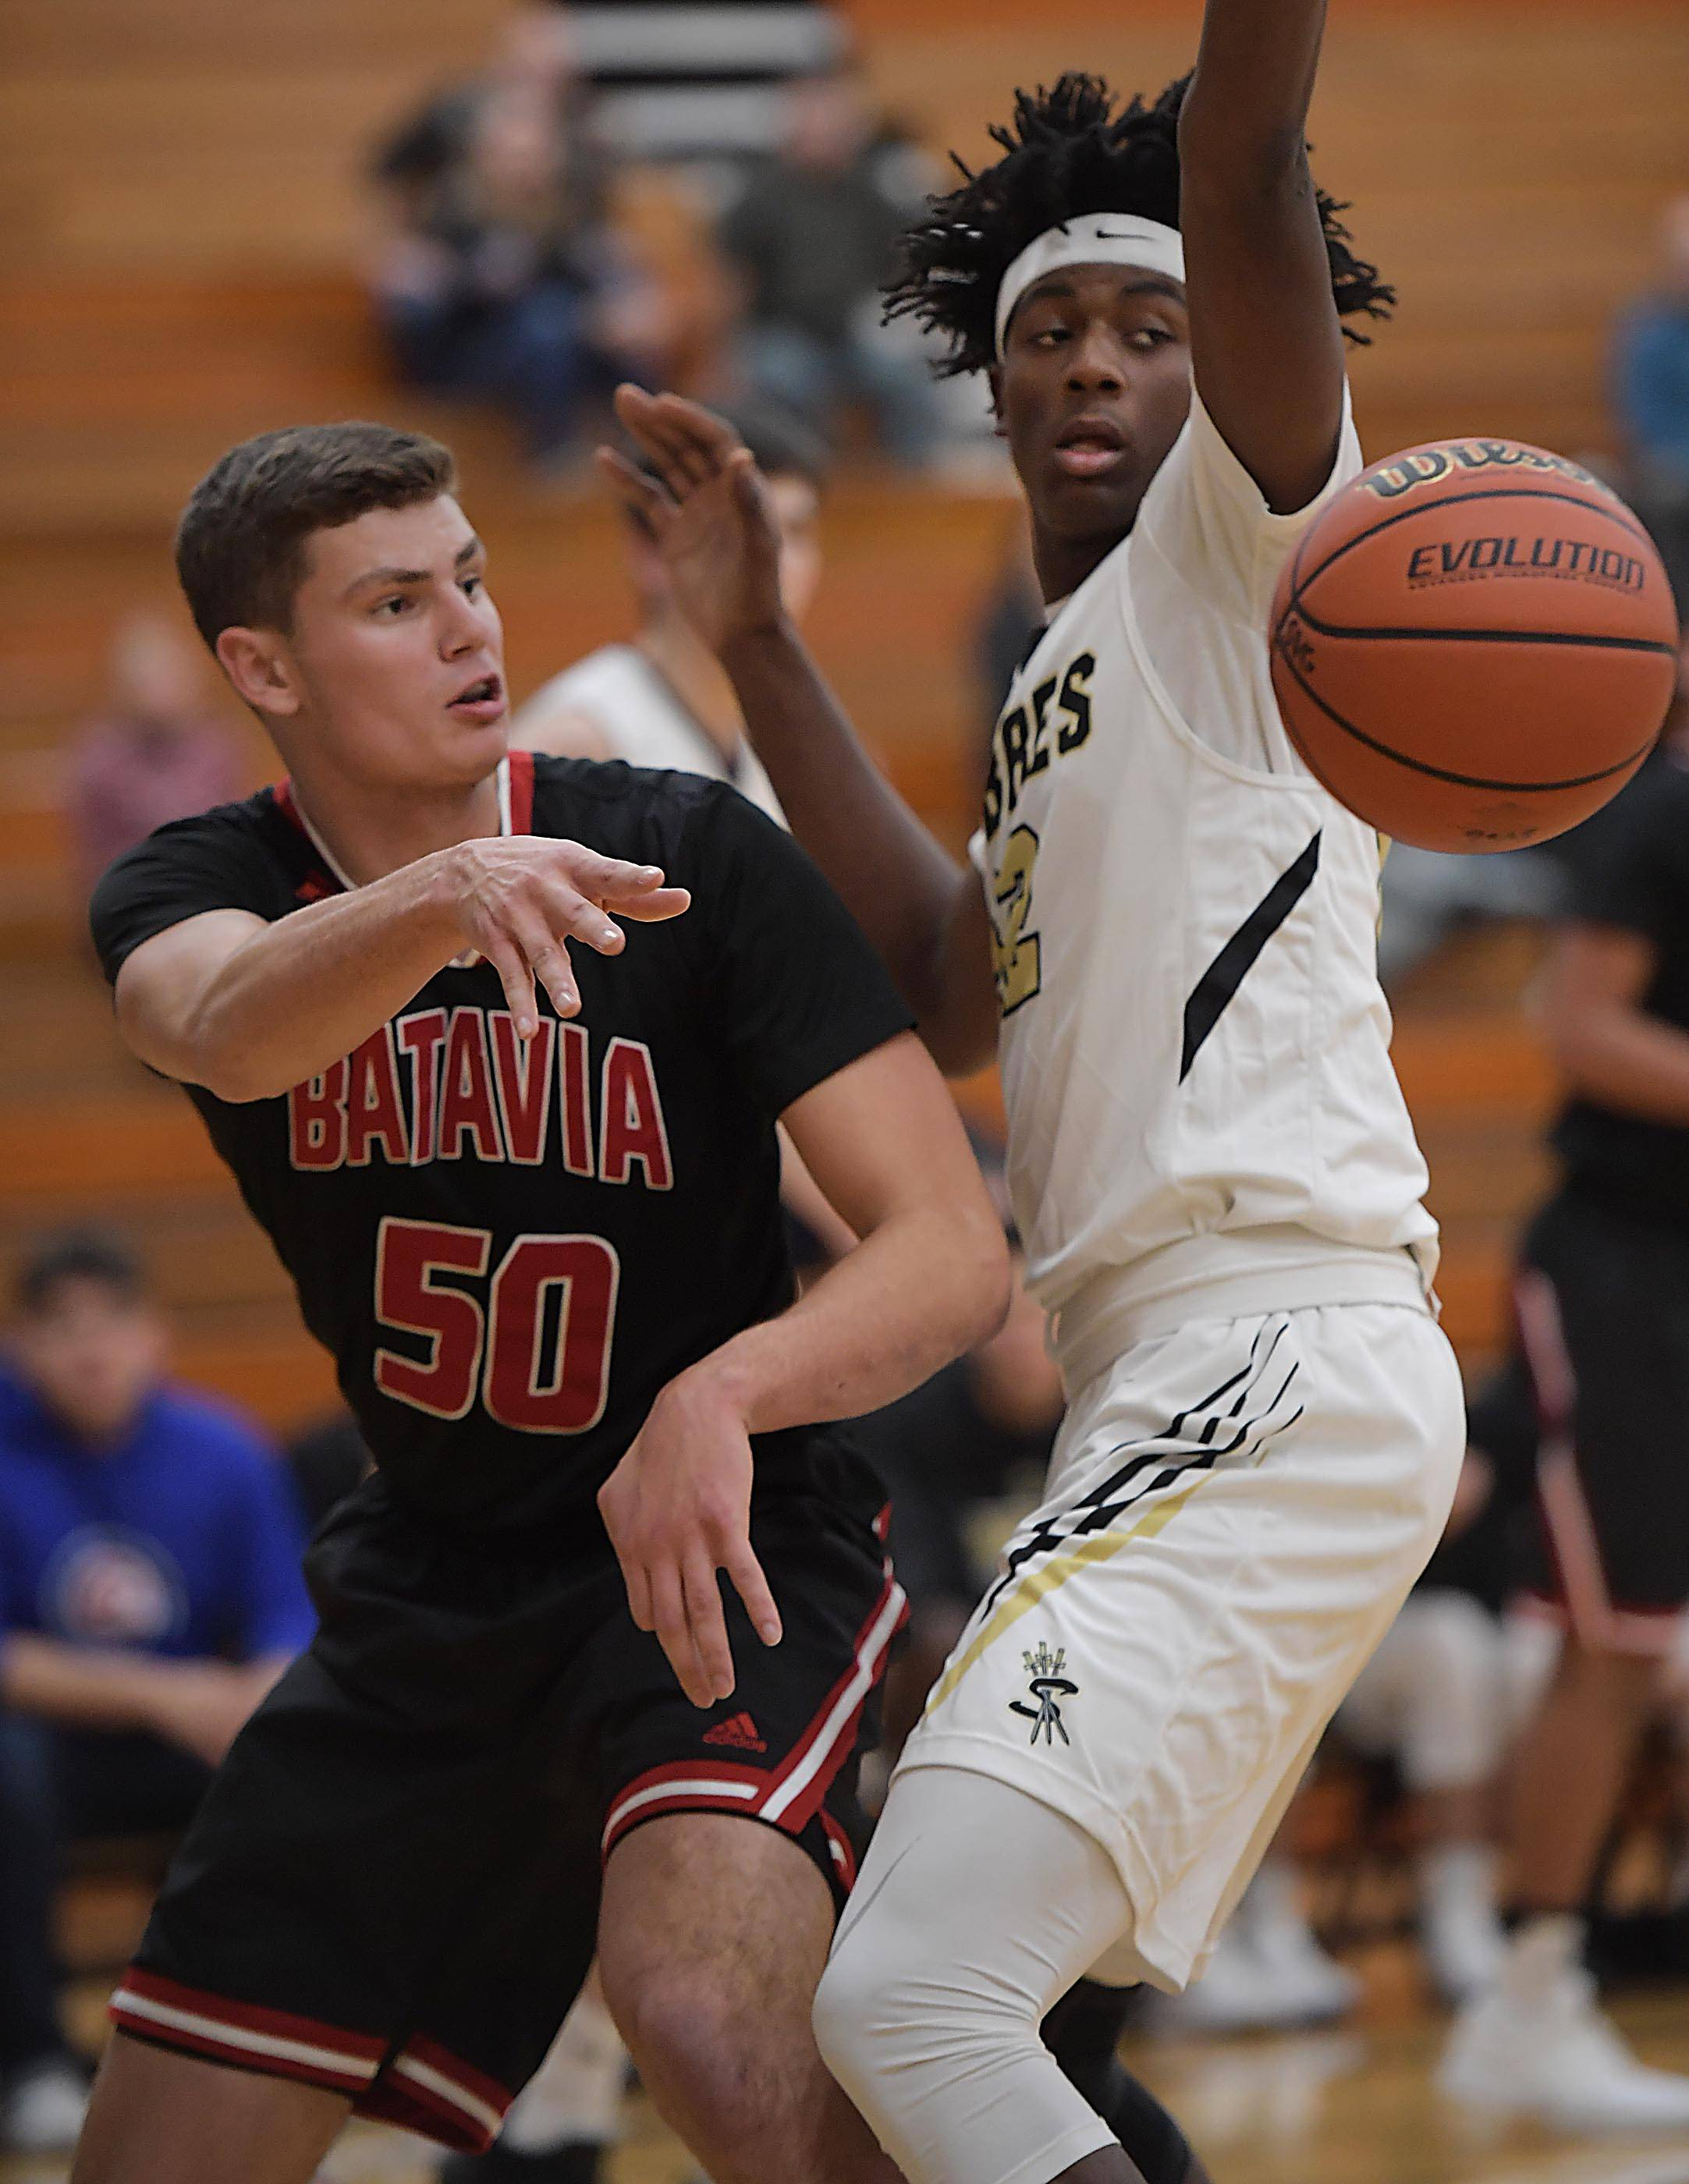 Batavia's Collin Richter passes around Streamwood's Keenan Cole.